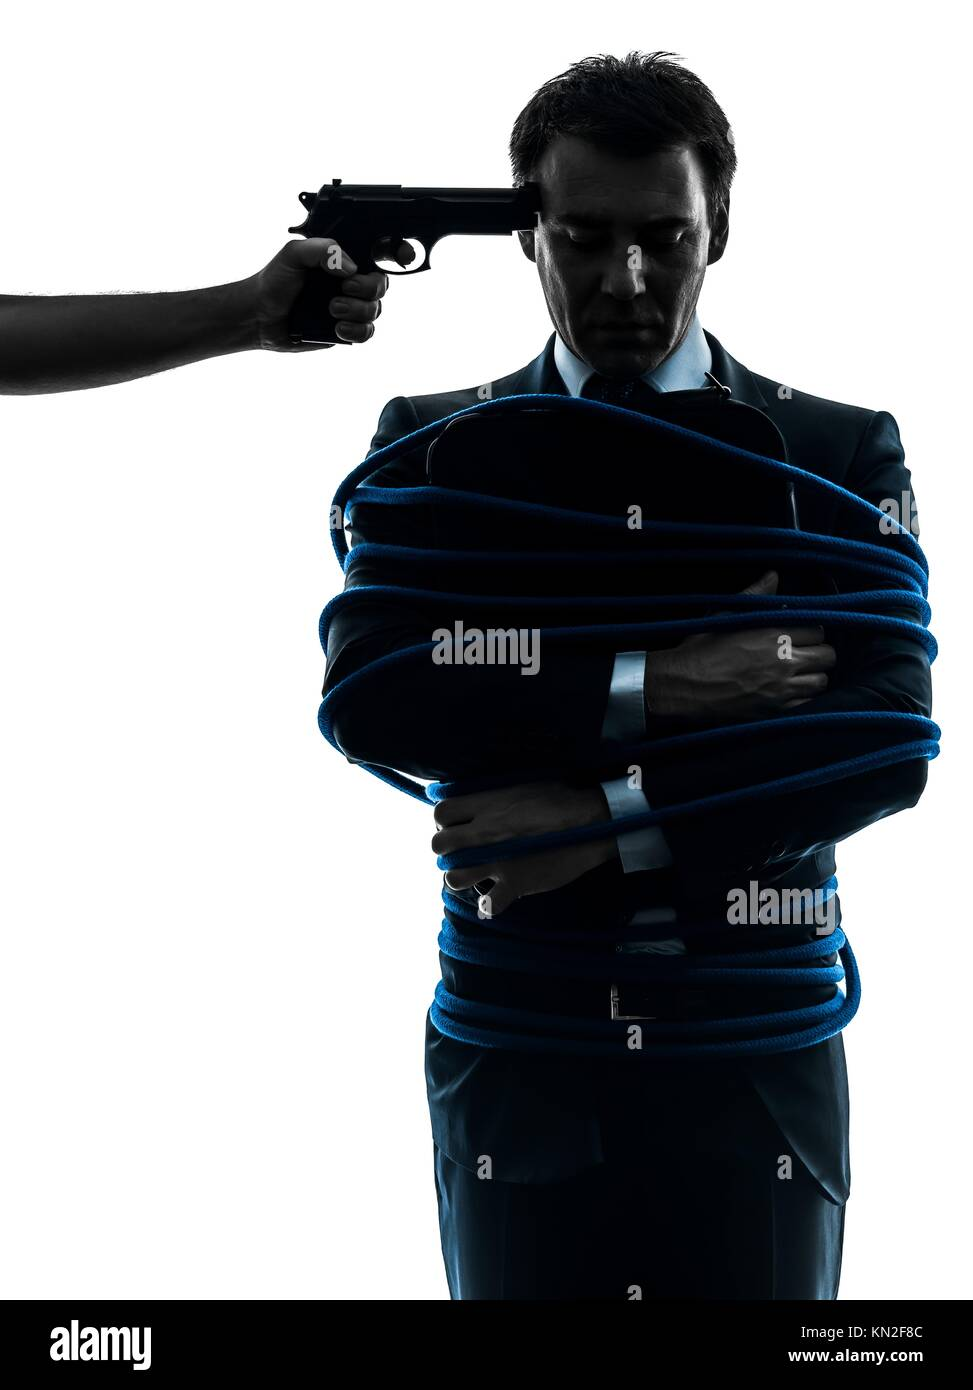 captive hostage business man in silhouette studio isolated on white background - Stock Image